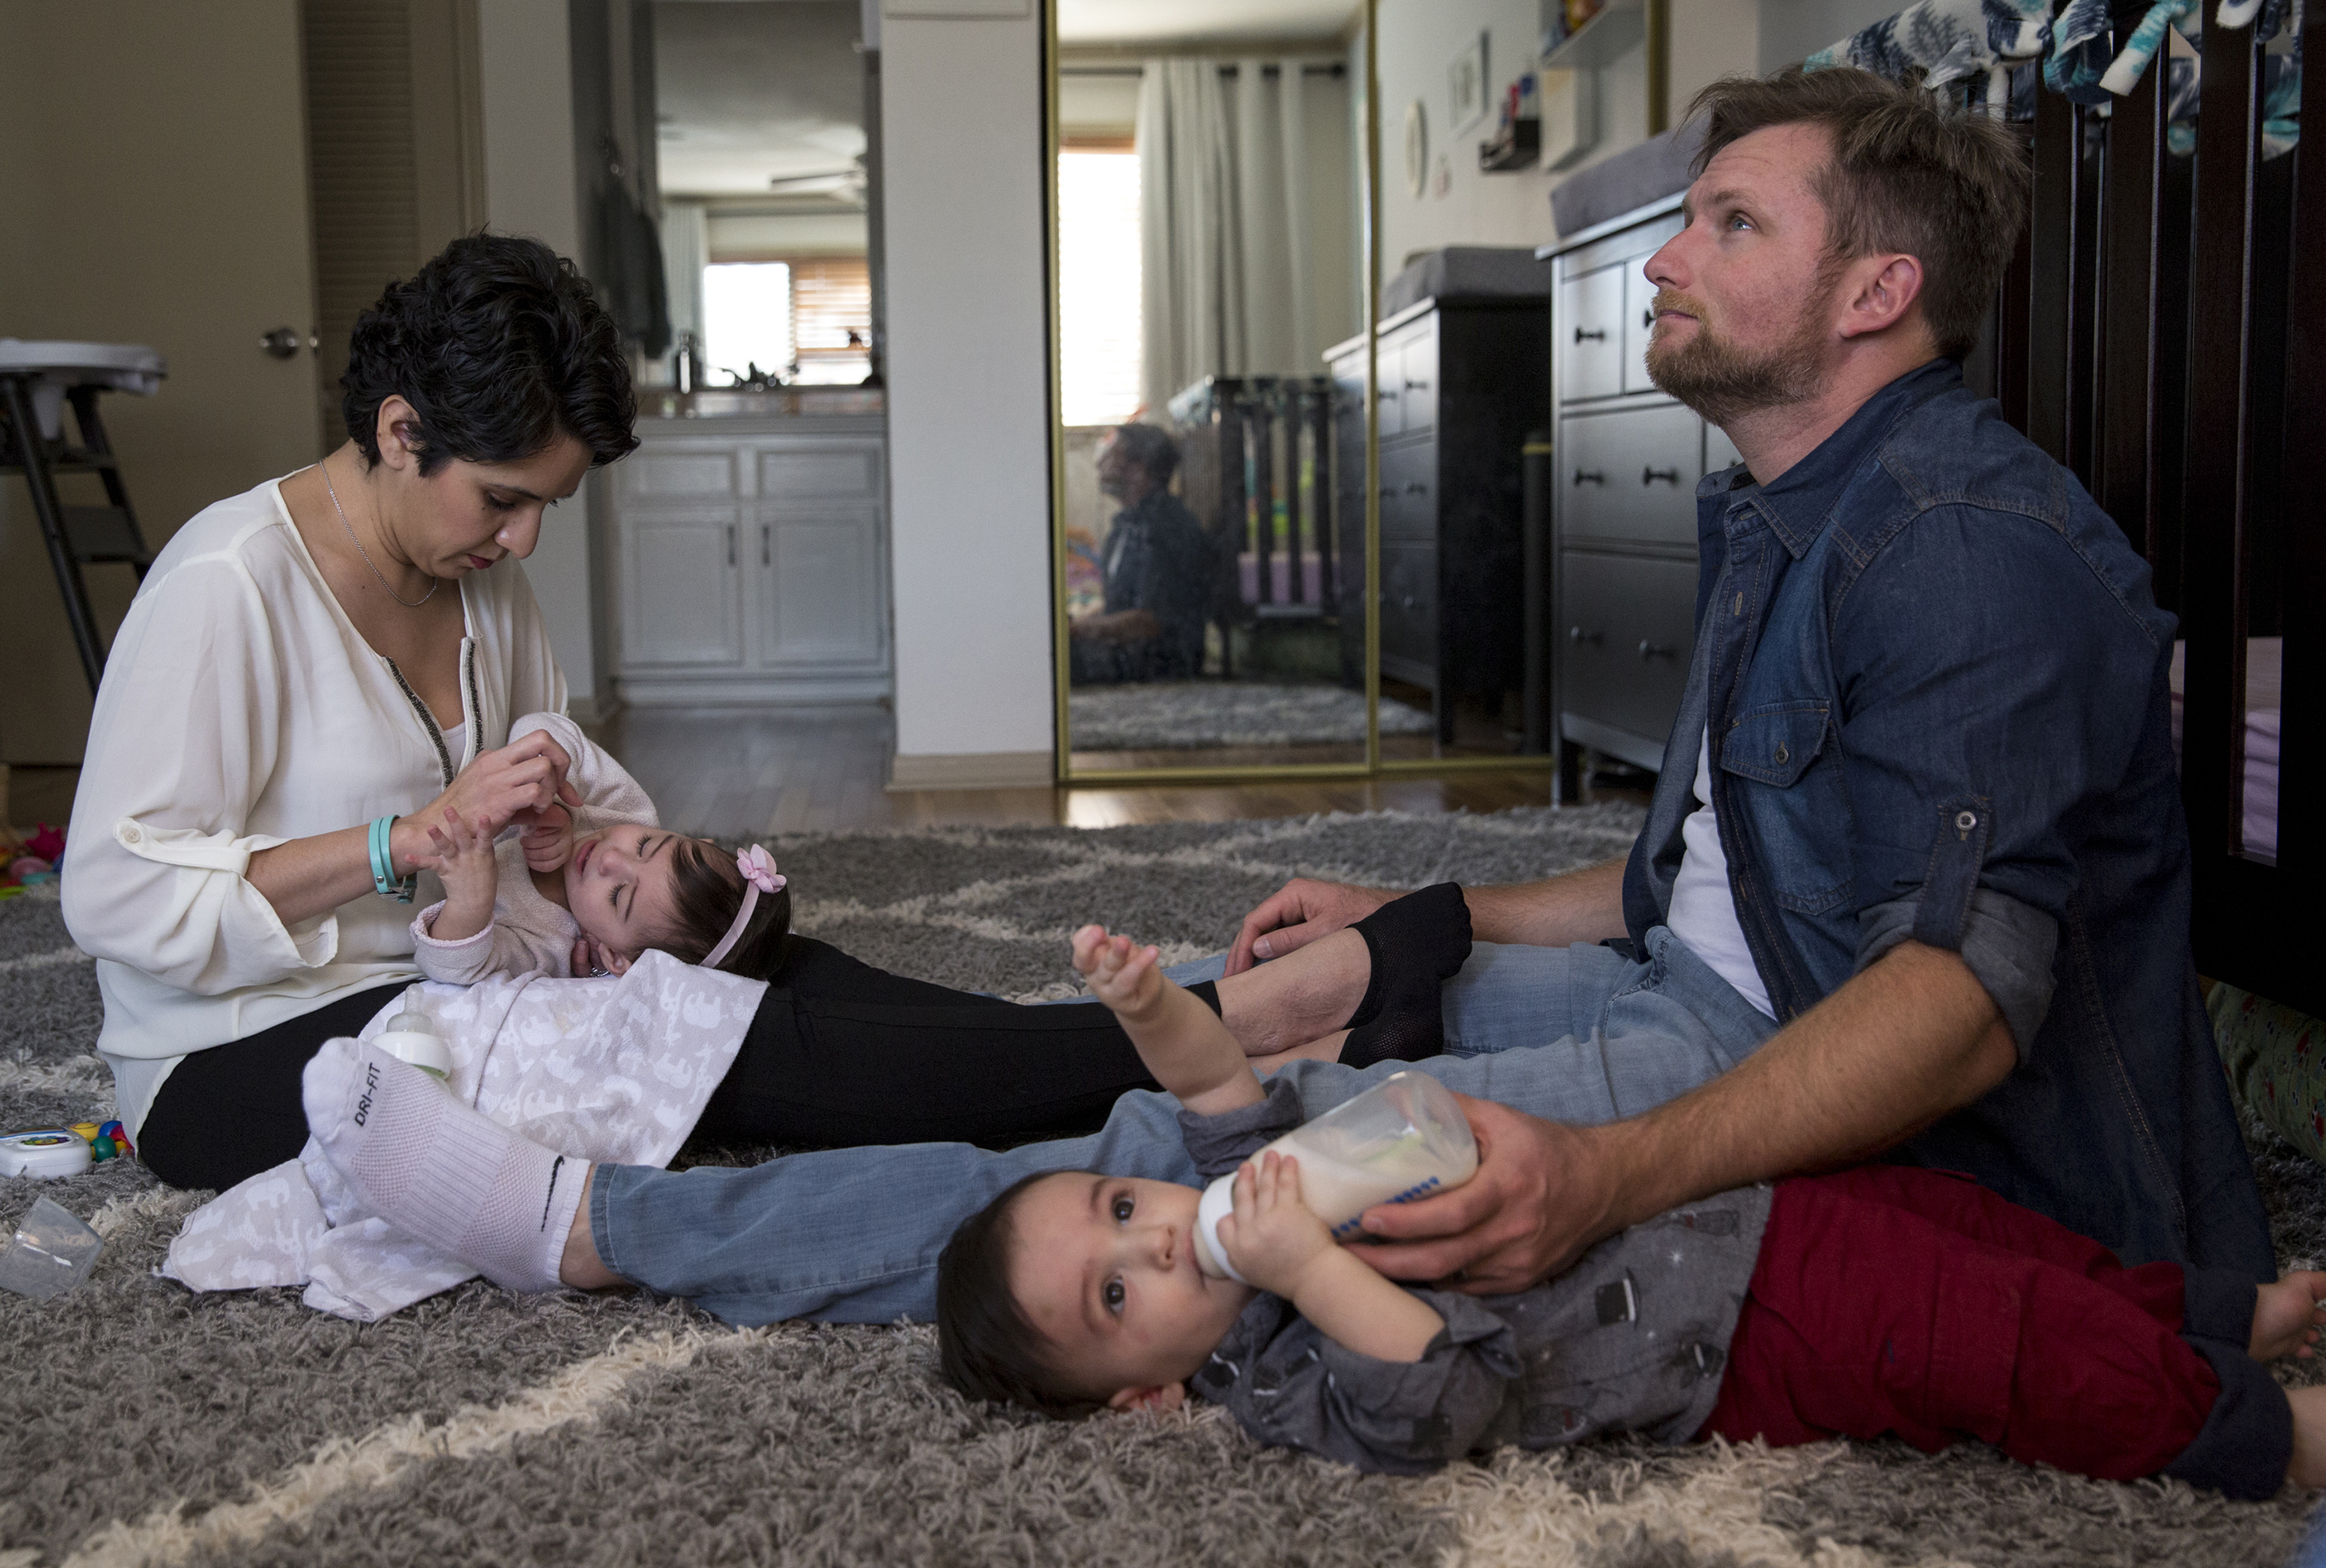 Leah Bahrencu, 35, and her husband, Vlad Bahrencu, 37, feed their twins, Lukas and Sorana, at home in Austin.